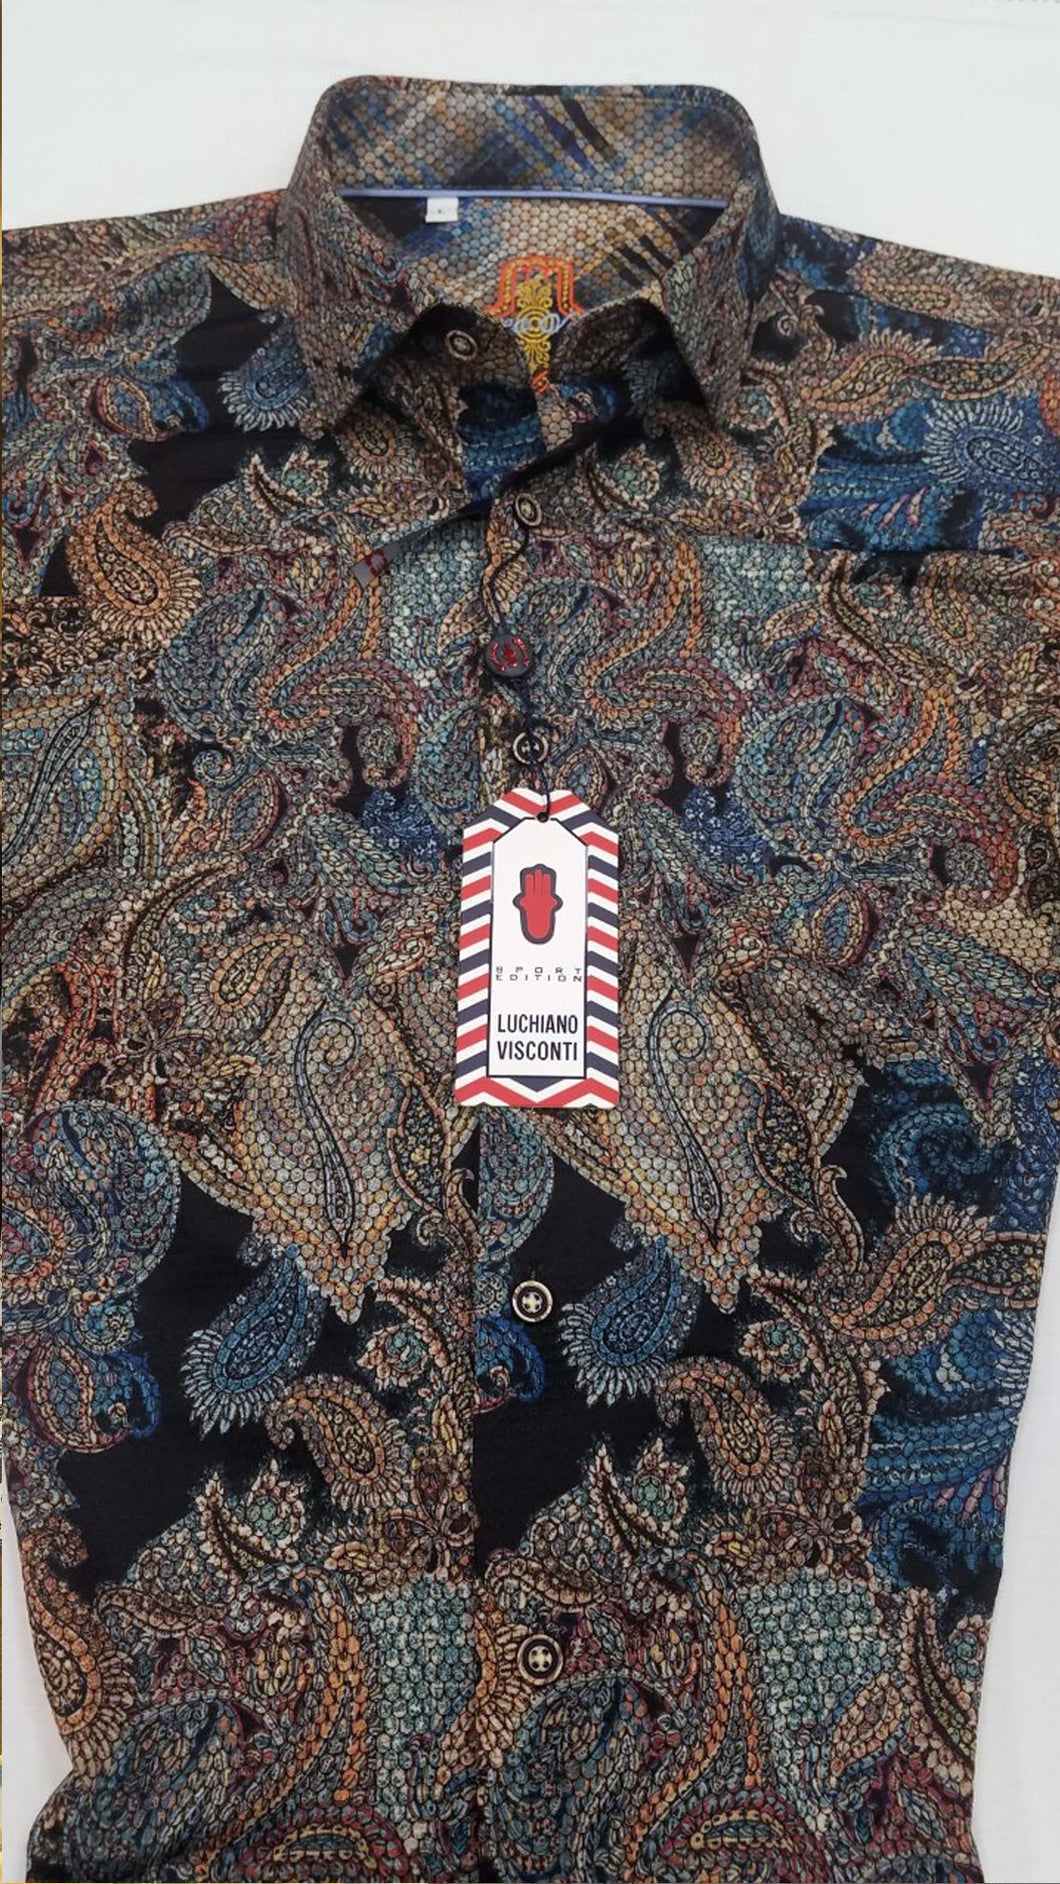 Luchiano Visconti - Brown Short Sleeve - Paisley Jacquard Knit